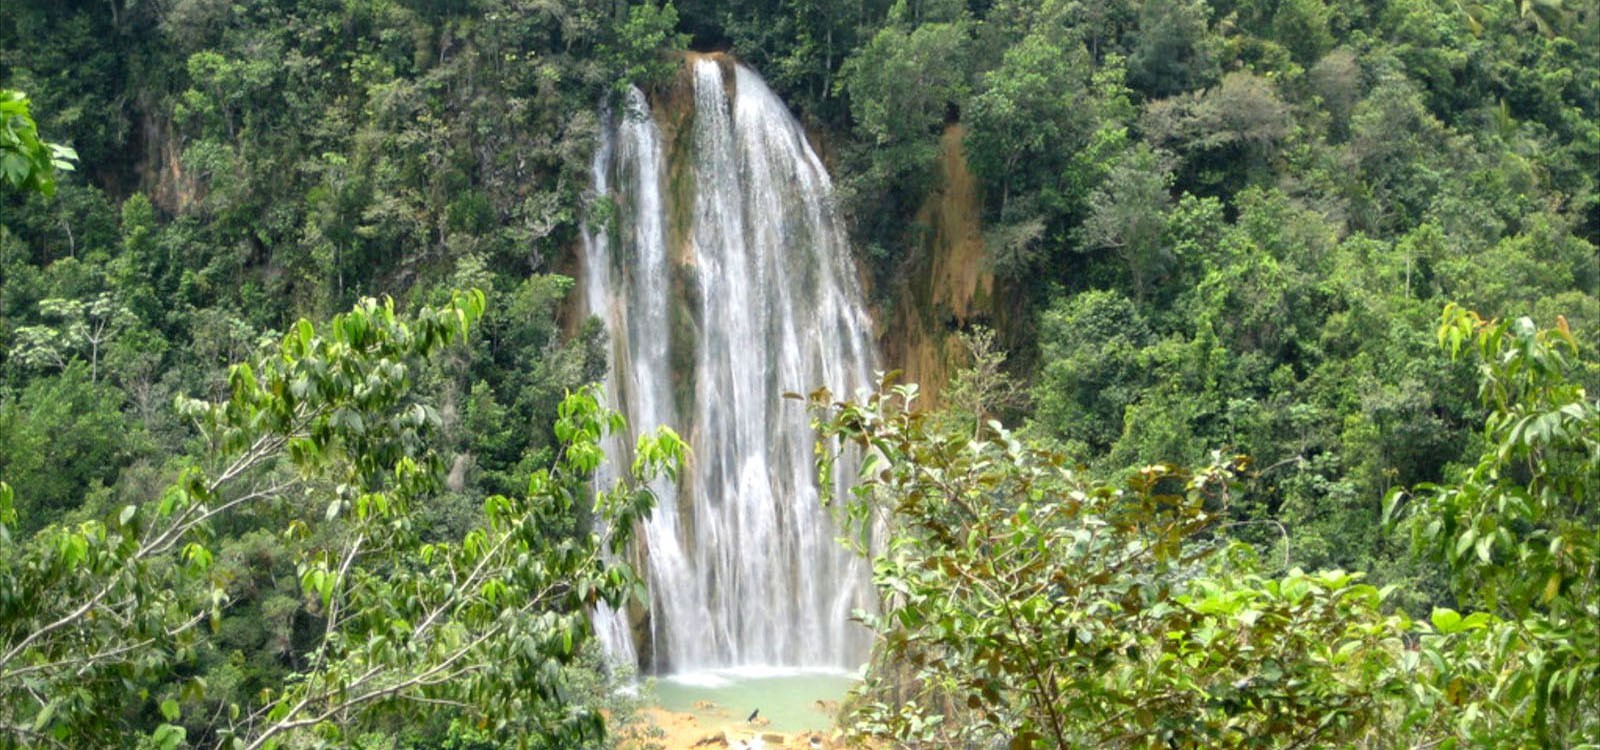 Salto El Limon Waterfall